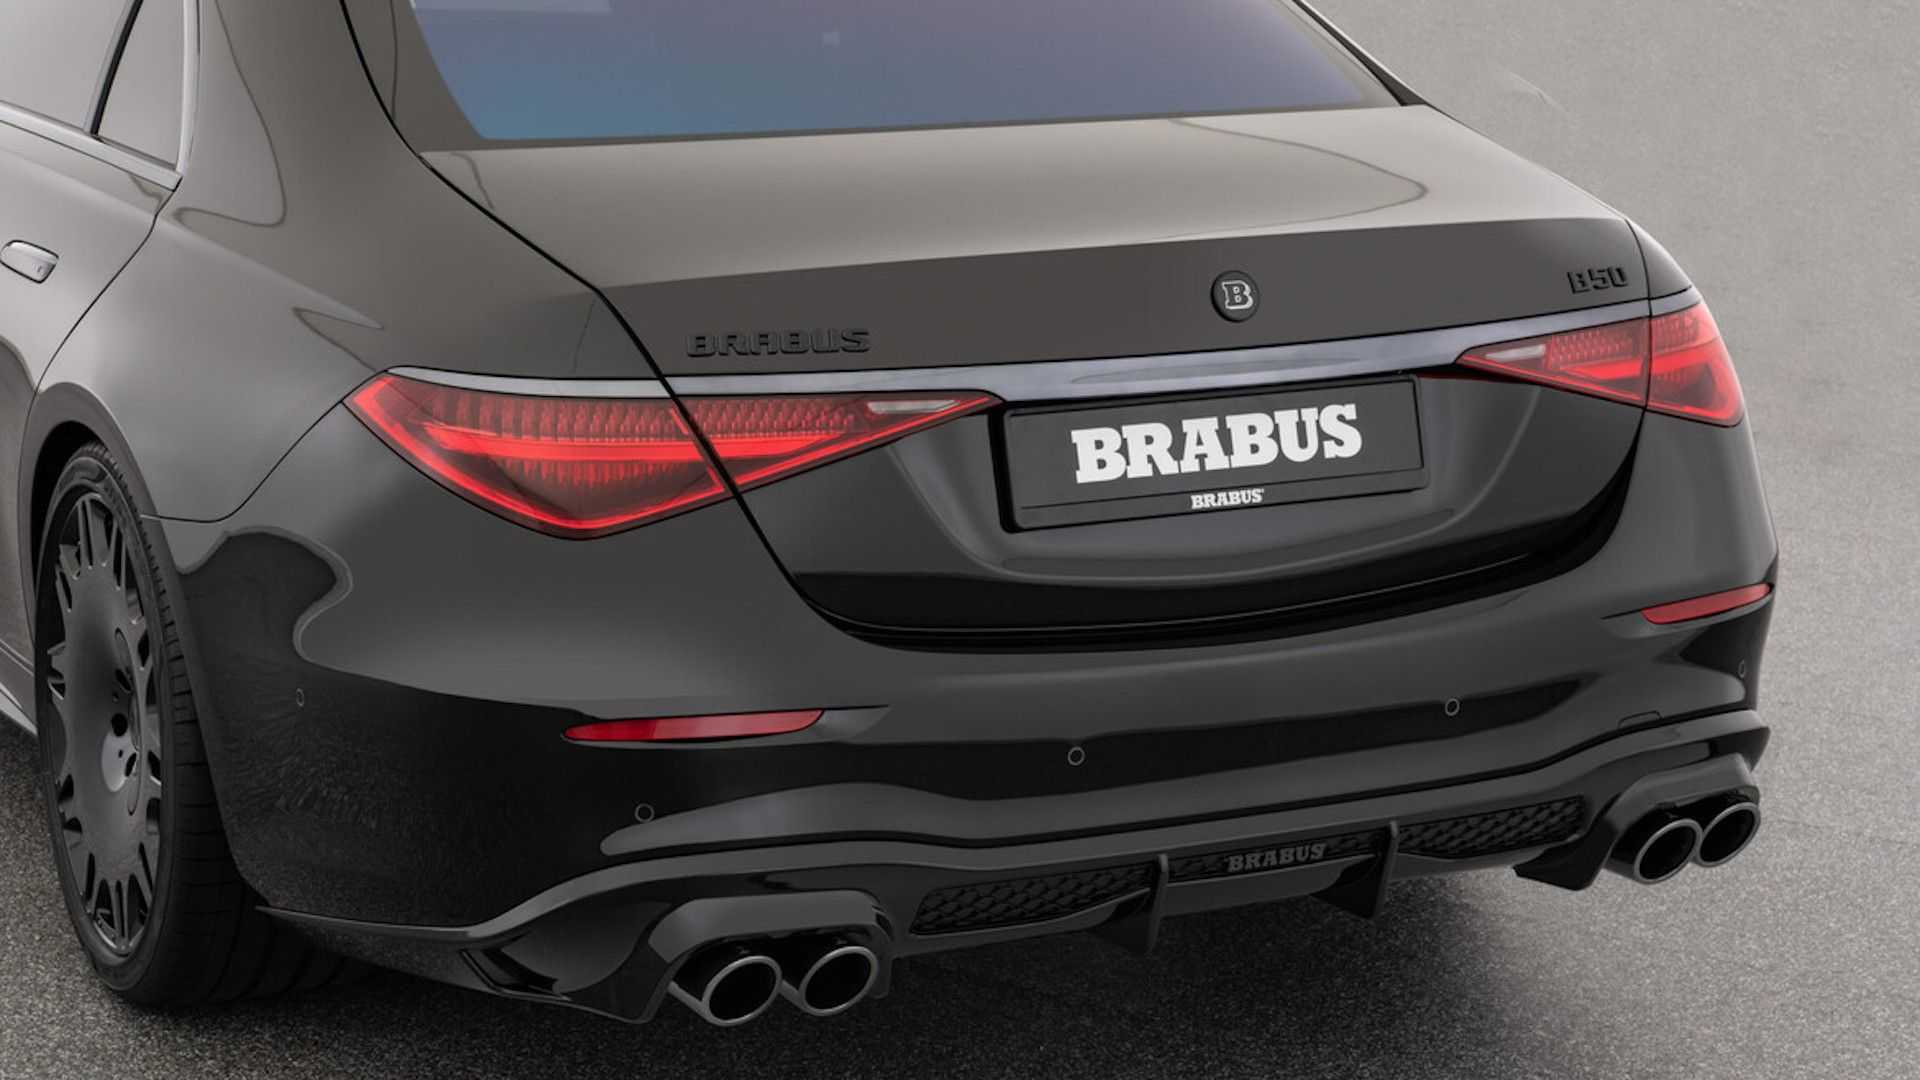 1618982406 331 Brabus 500 entered the market Concentrated makeup of the new Brabus 500 entered the market; Concentrated makeup of the new generation Mercedes-Benz S-Class 8